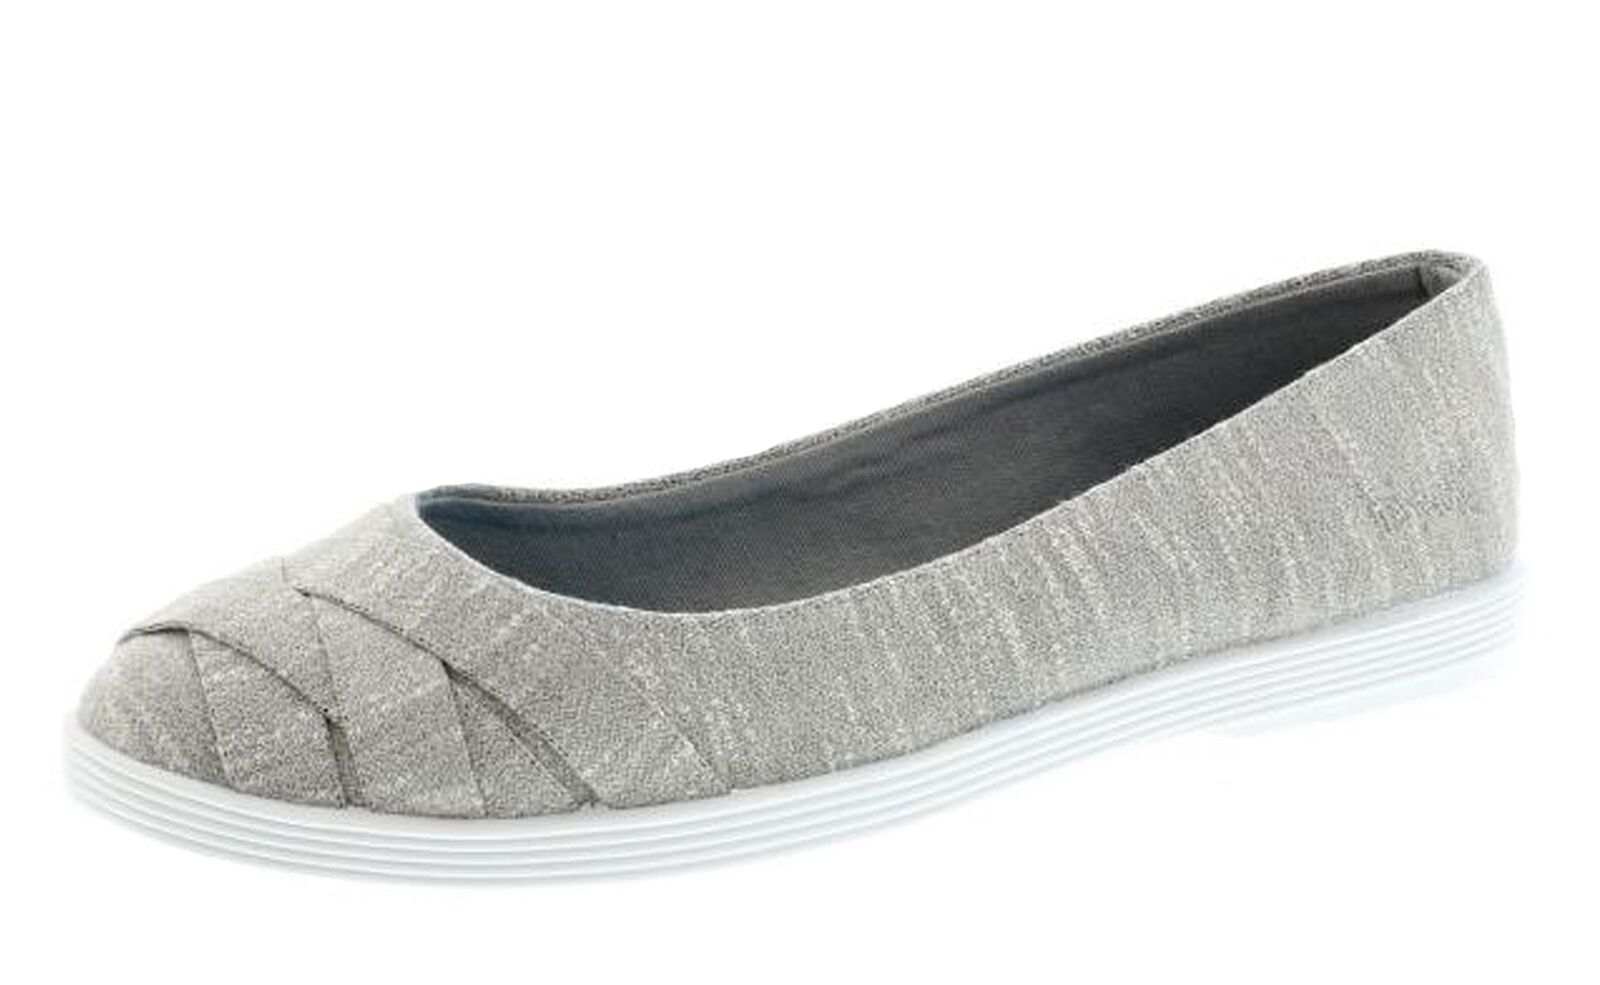 Blowfish NEW Glo 2 heather grey women's flat ballet fashion shoes sizes 3-8